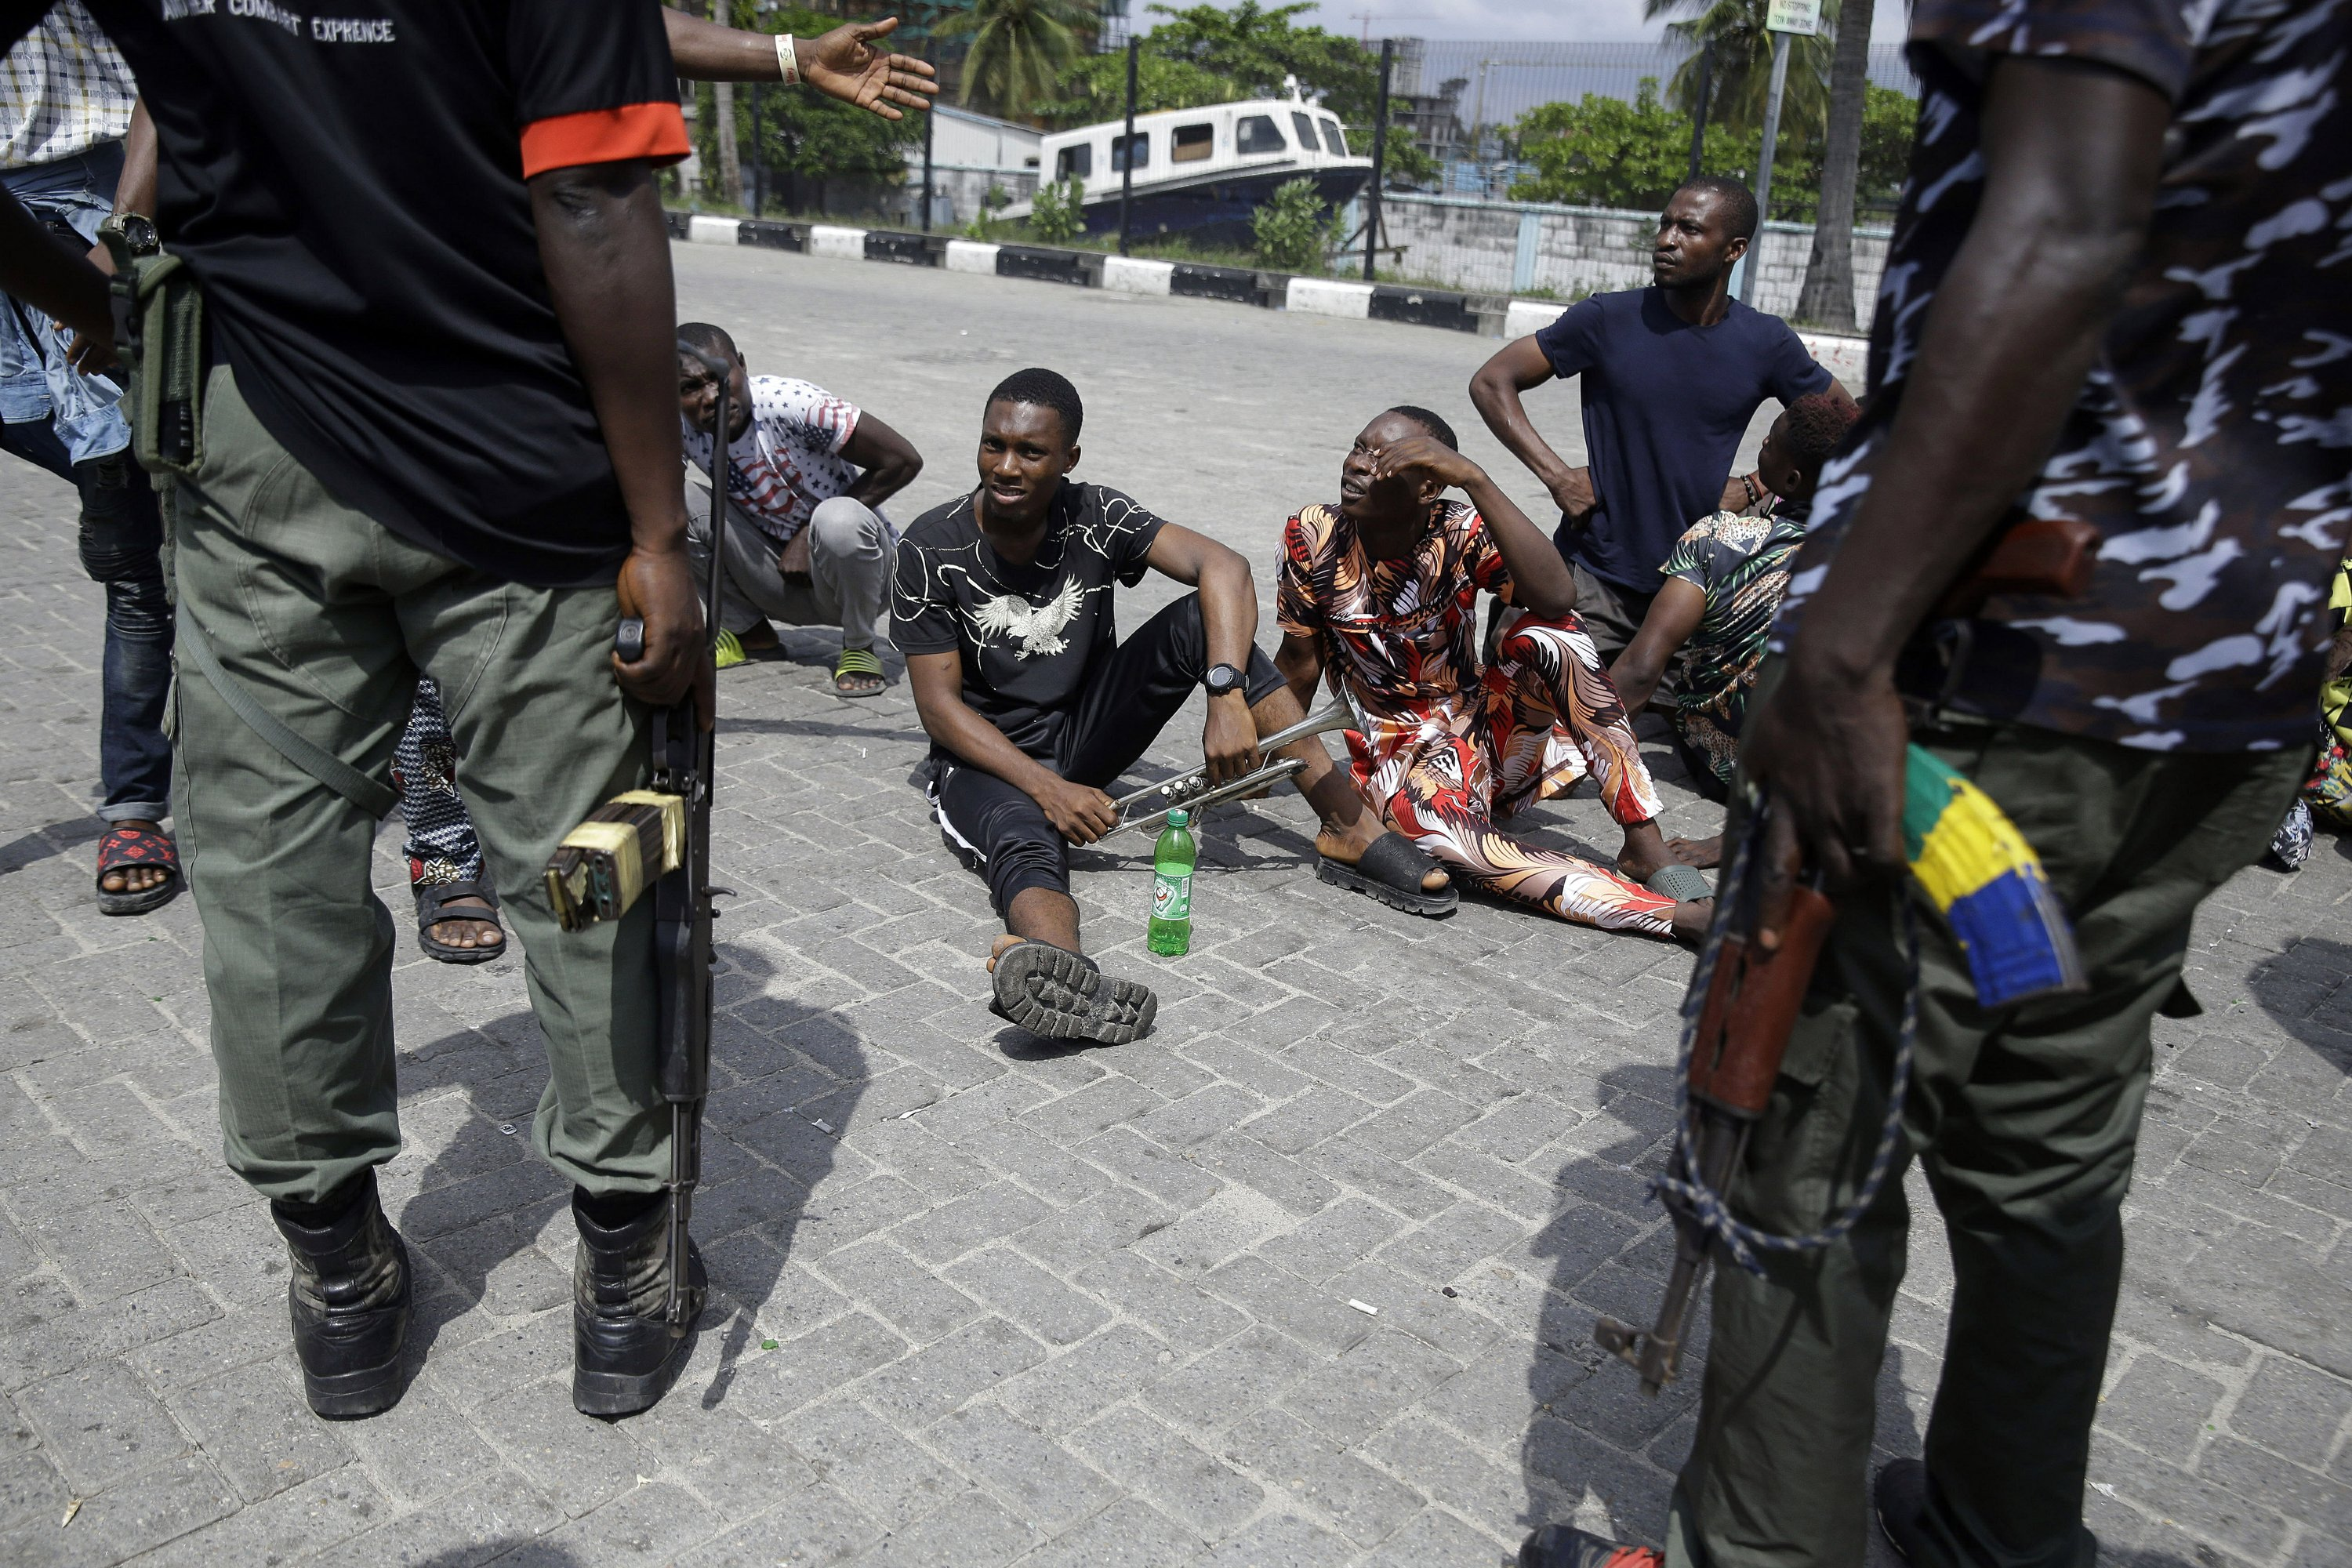 Nigeria says 51 civilians and 18 security forces have been killed in unrest following protests over police abuses. President Muhammadu Buhari blames 'hooliganism' and says authorities used 'extreme restraint,' comments which could further inflame tensions.